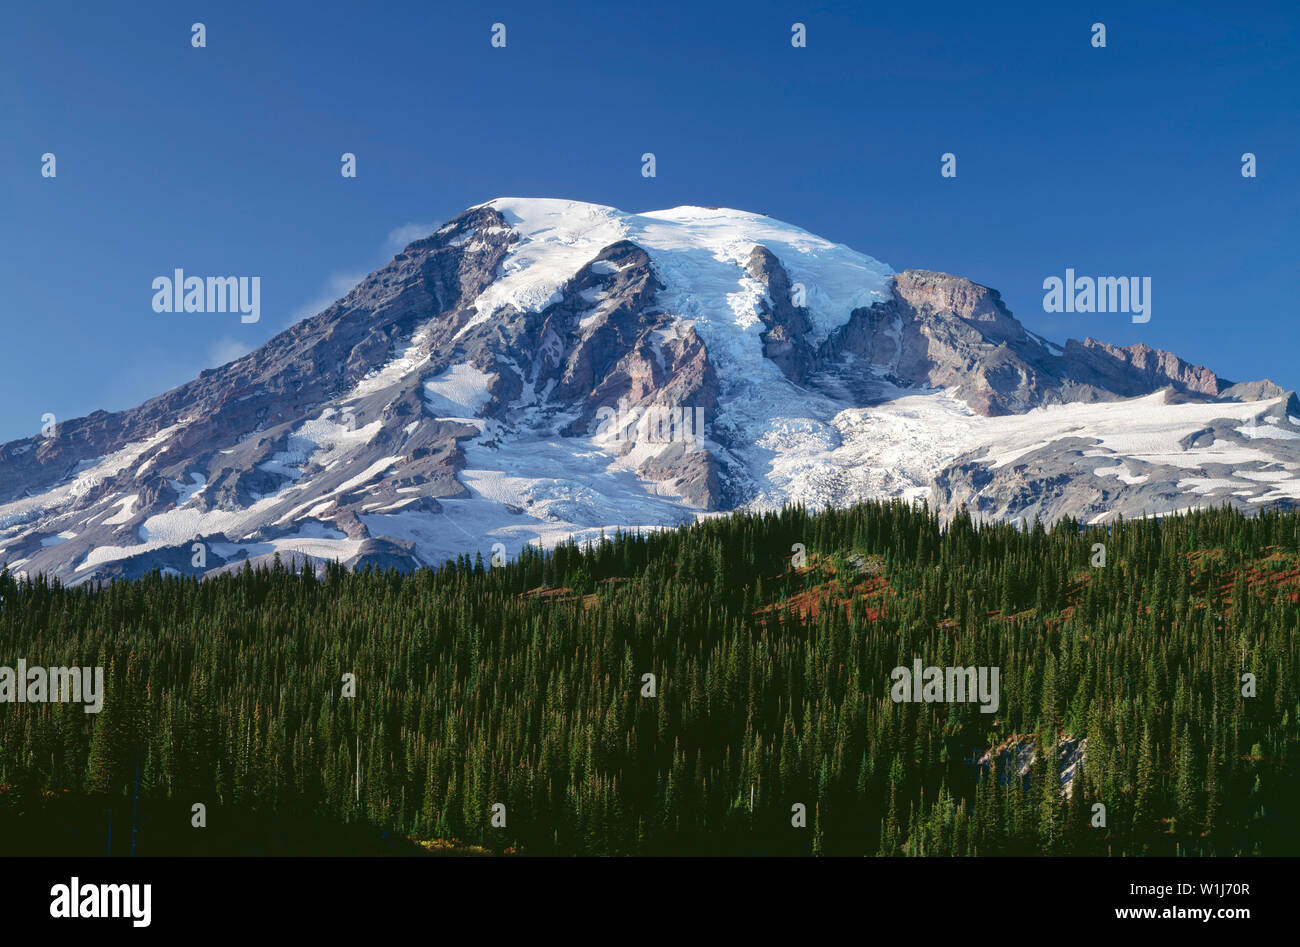 USA, Washington, Mt. Rainier National Park, South side of Mt. Rainier rises about 10,000 ft. above evergreen forest. - Stock Image